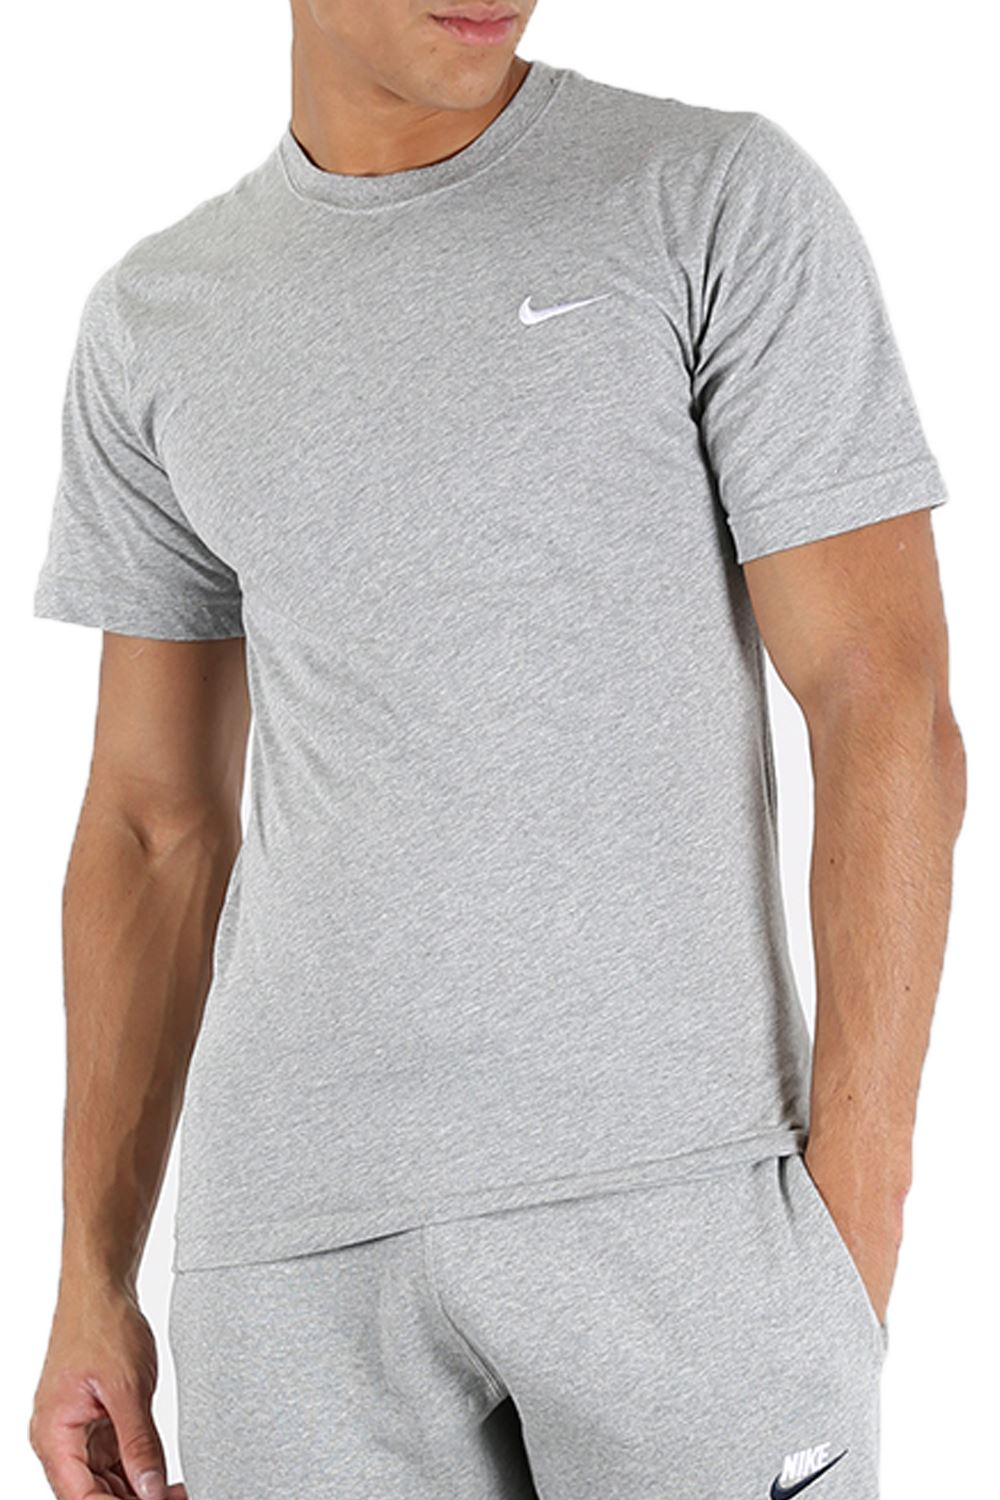 nike mens cap sleeve just do it swoosh gym fitness crew. Black Bedroom Furniture Sets. Home Design Ideas